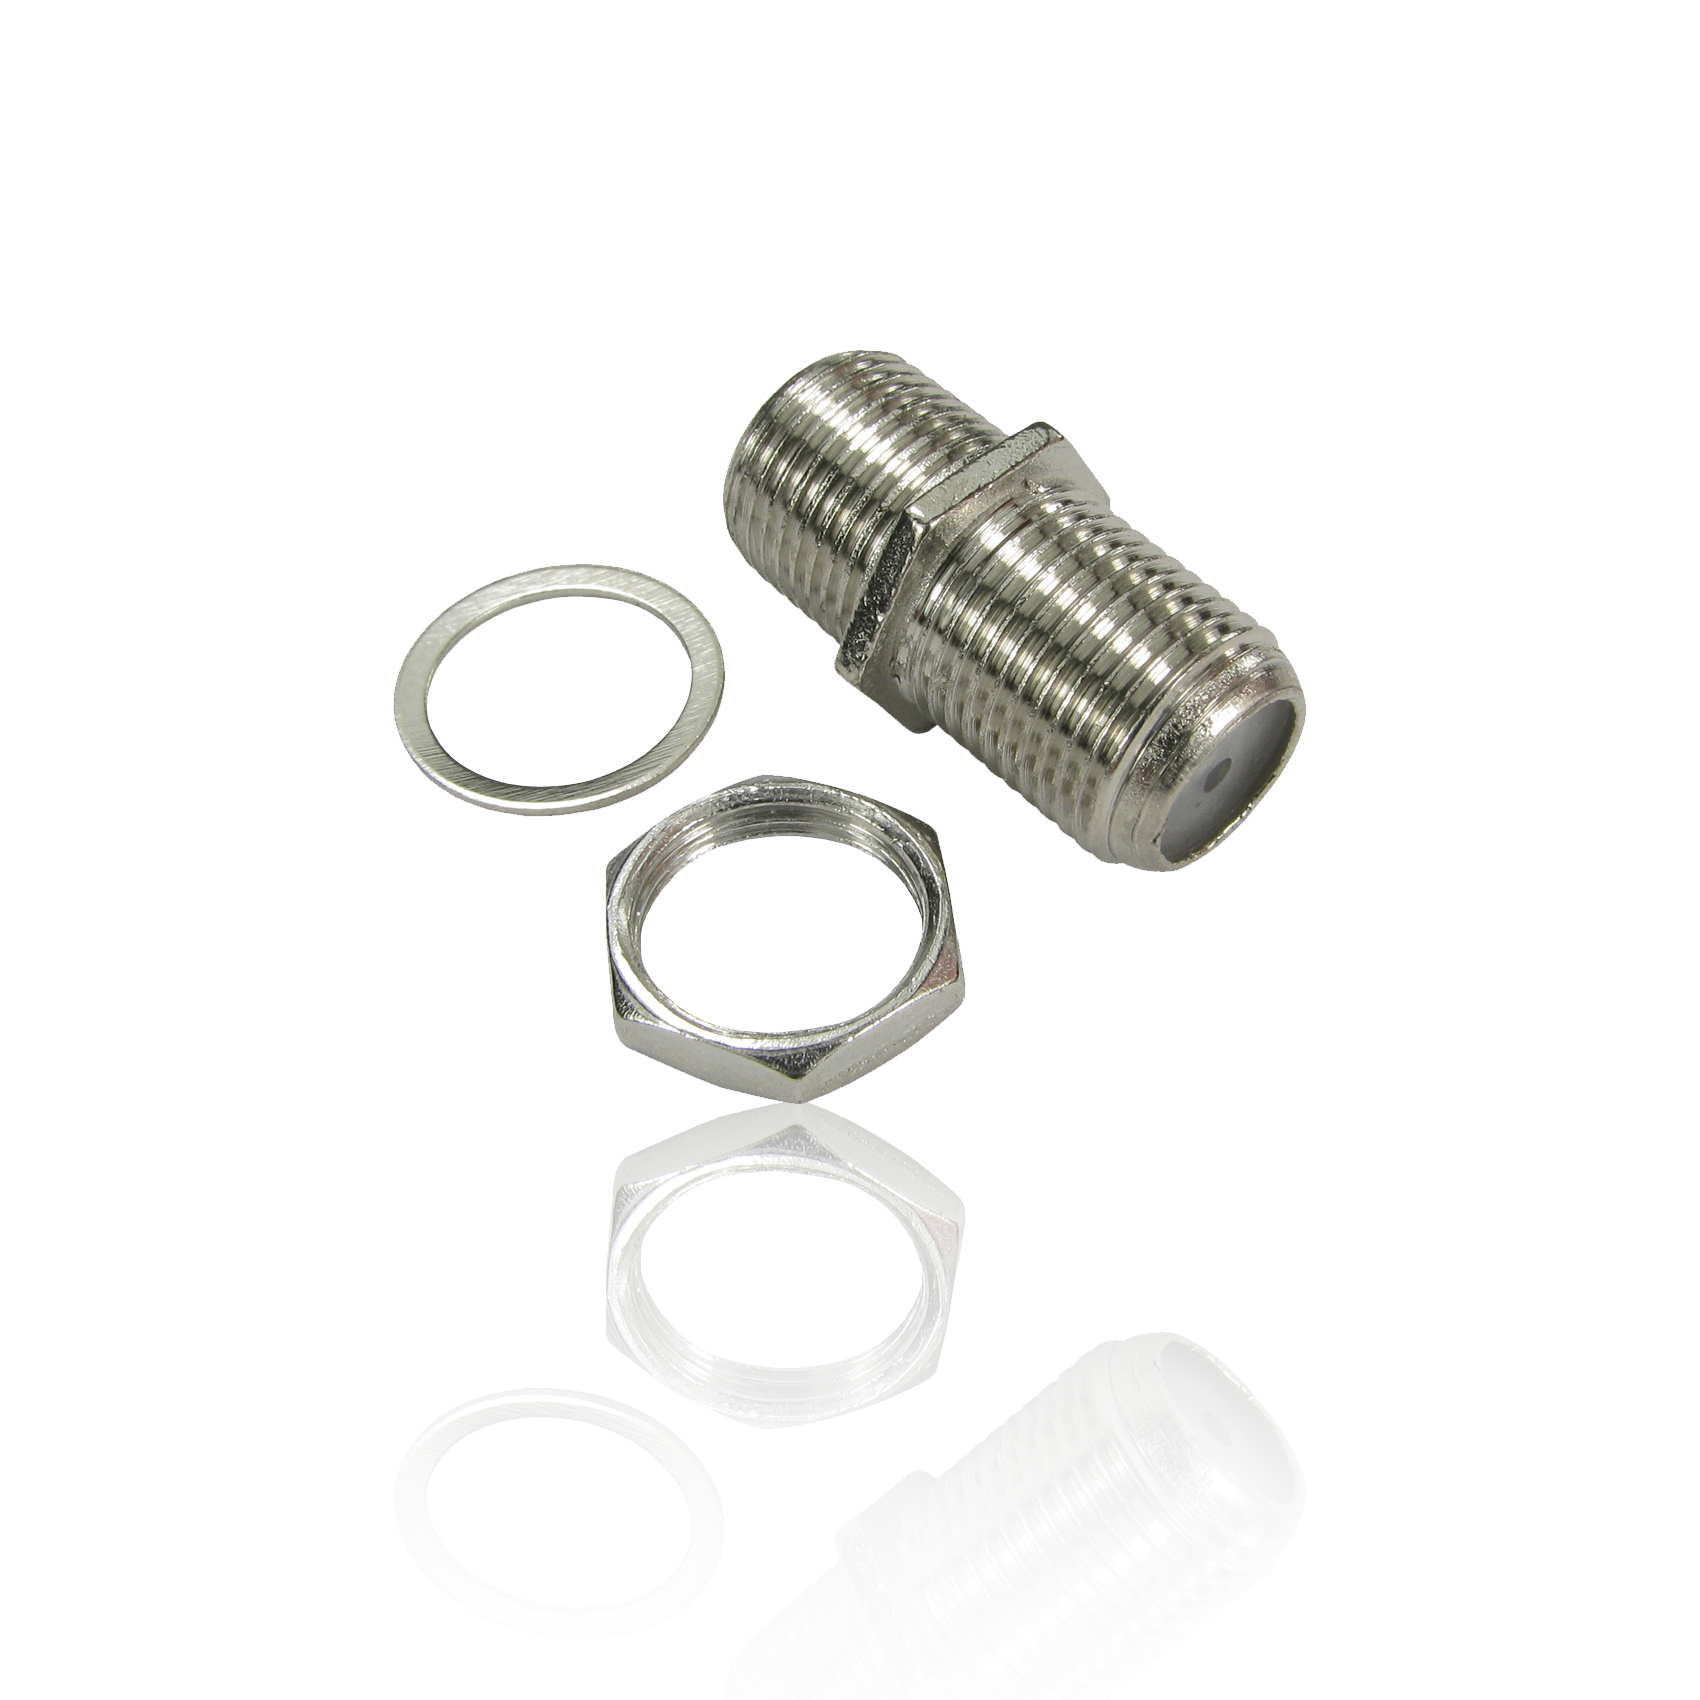 F Type Connector Satellite Cable F F Coupler Joiner With